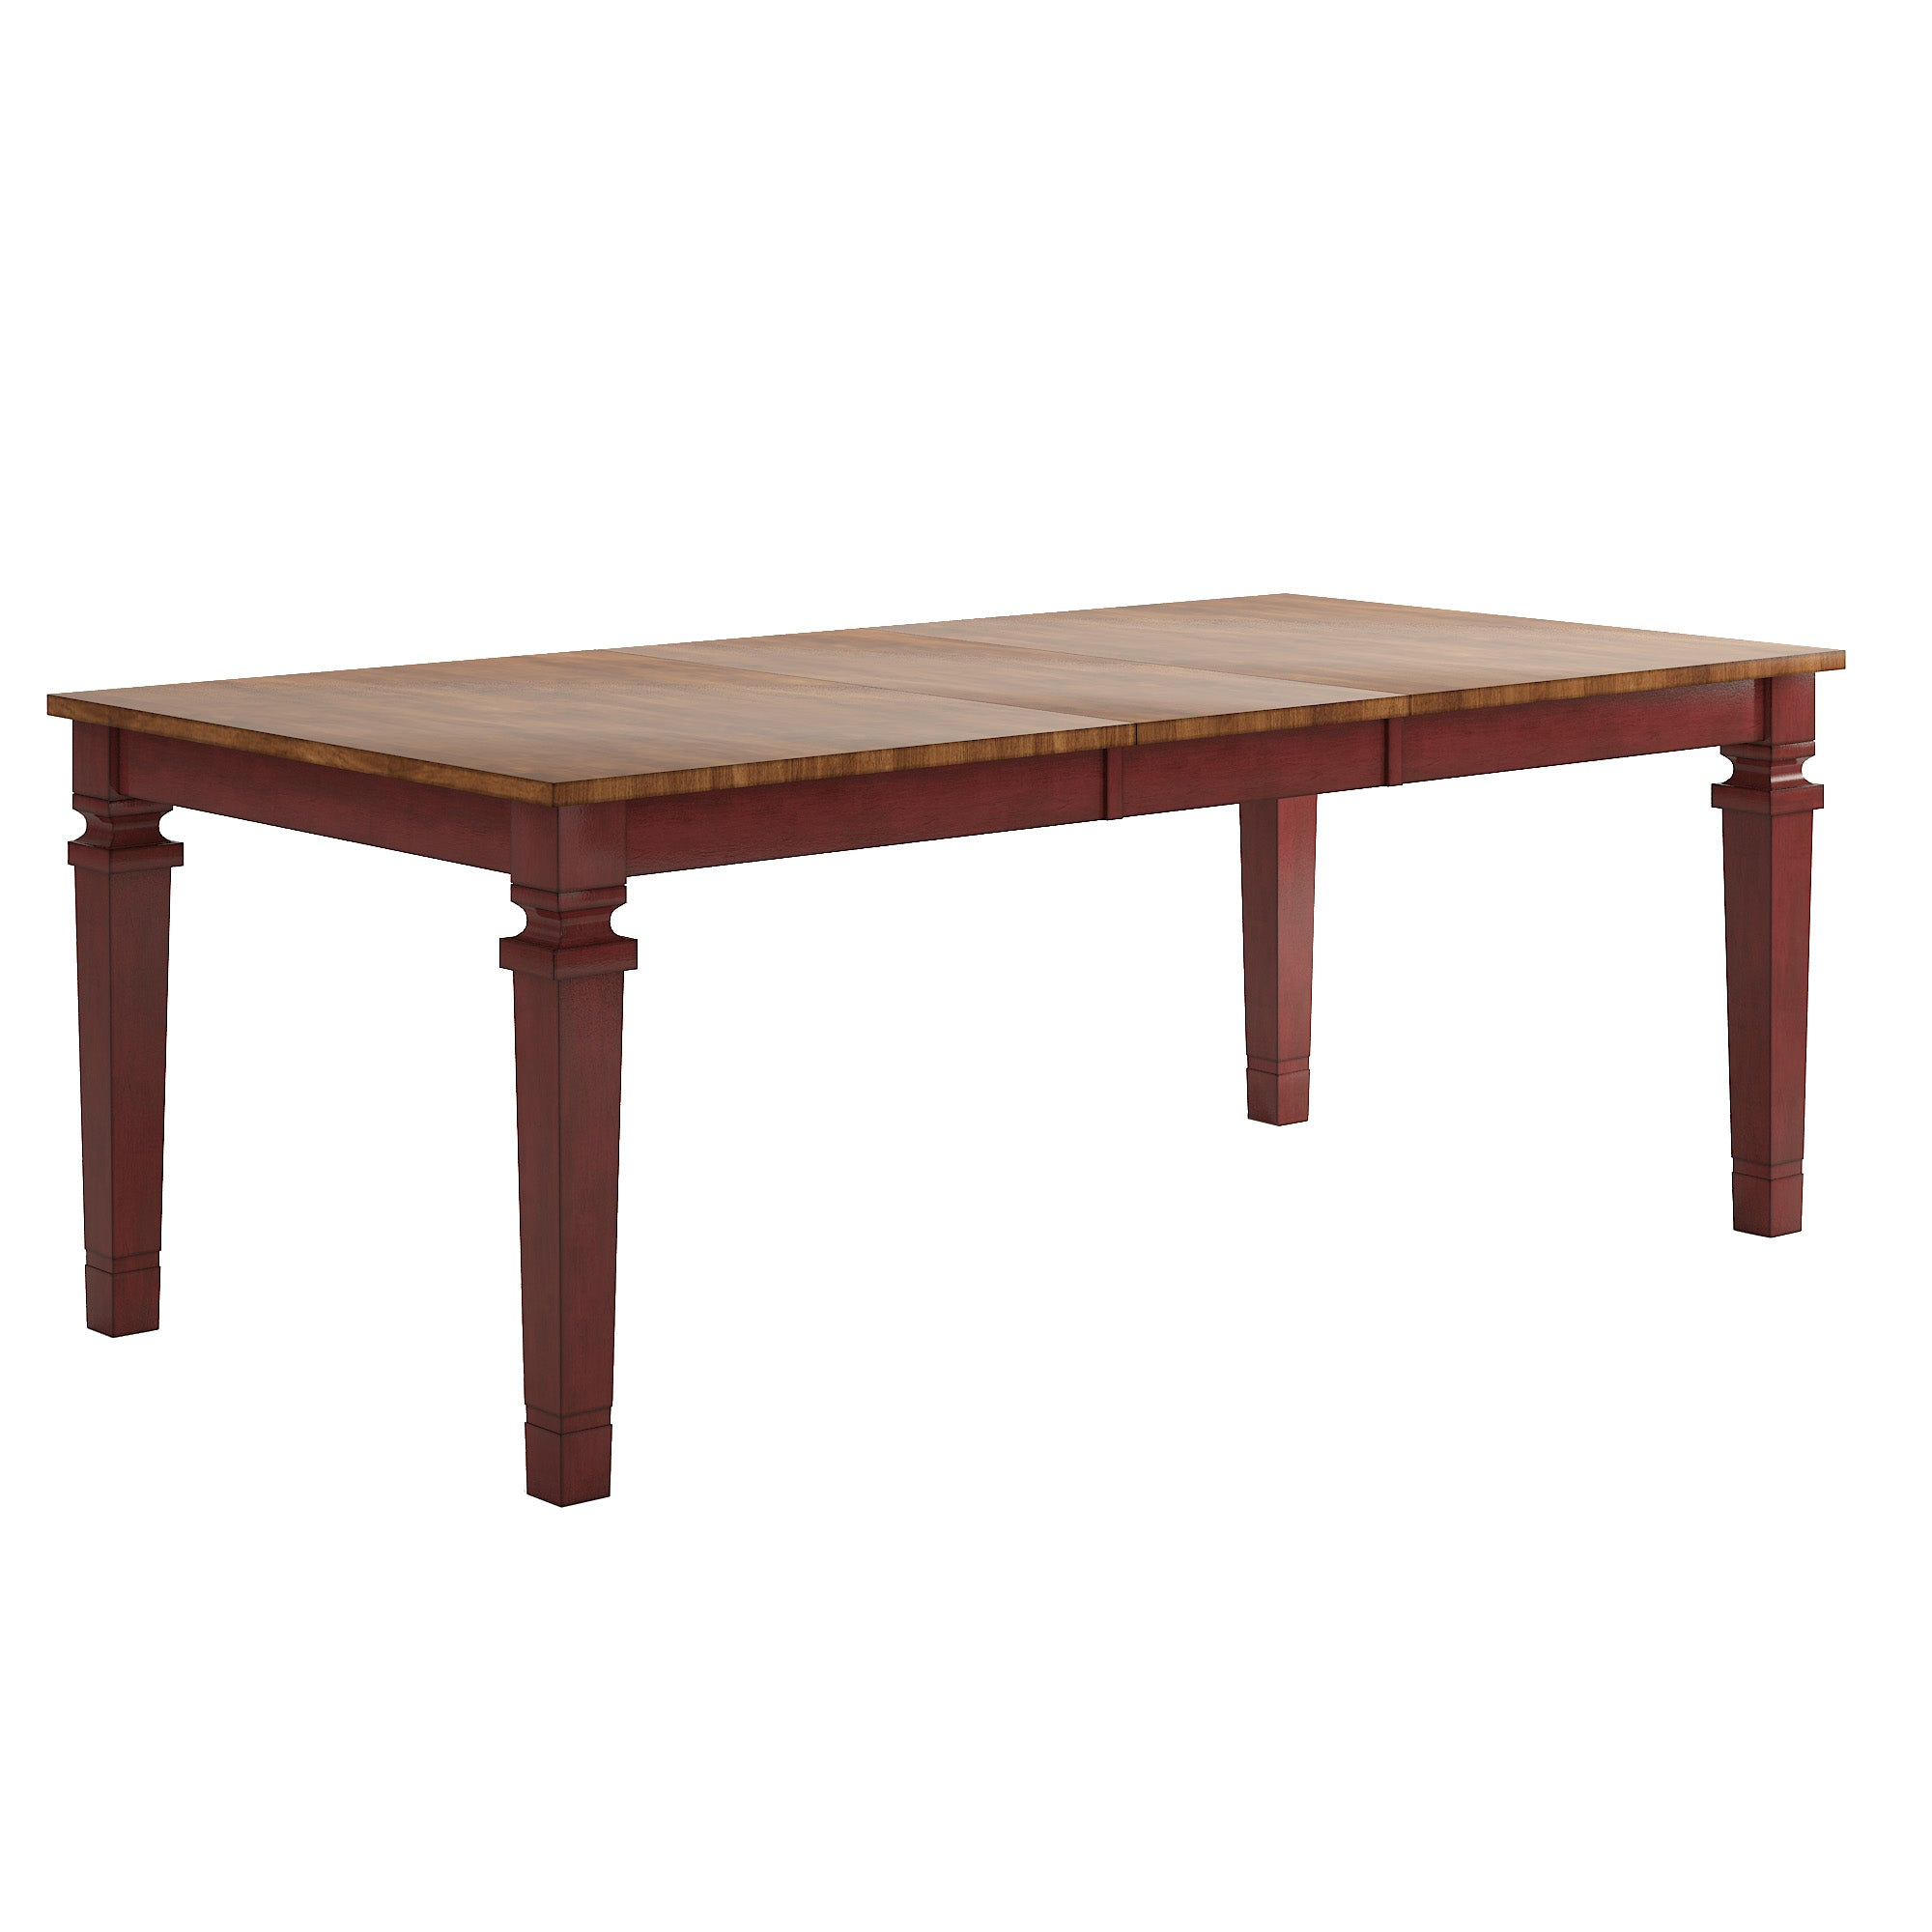 Solid Wood Extendable Dining Table - Red